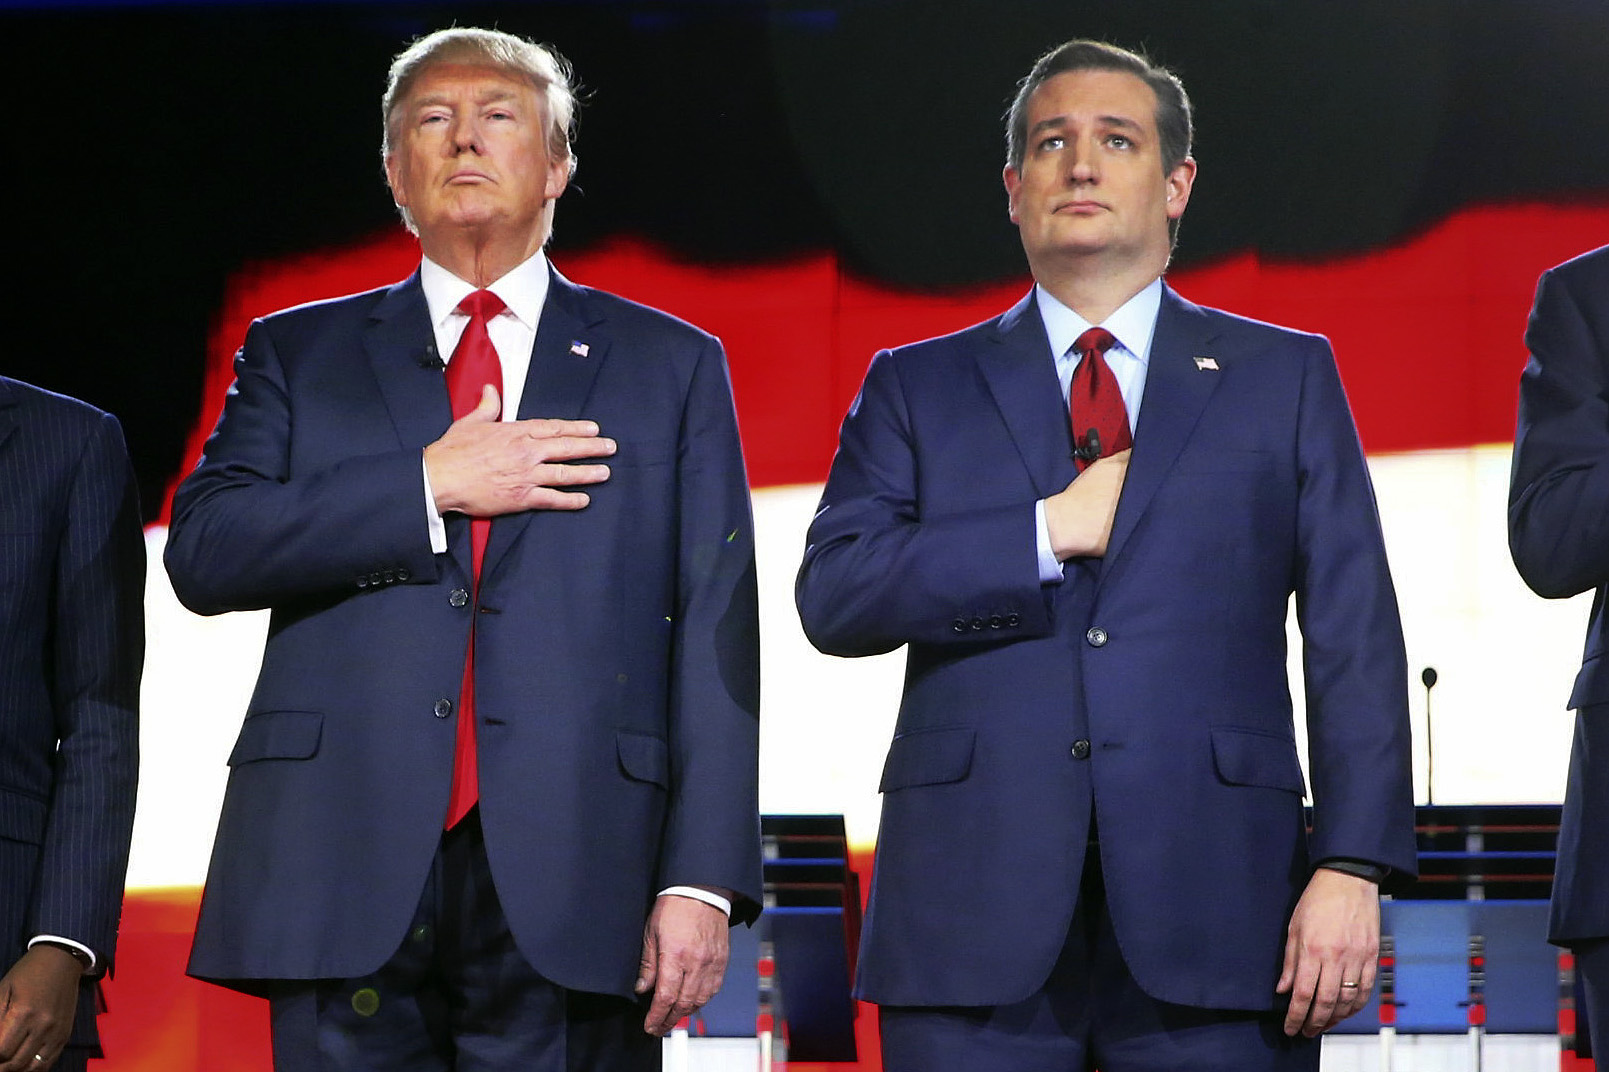 Republican presidential candidates Donald Trump and Texas Sen. Ted Cruz stand during a Republican presidential debate in Las Vegas in December.